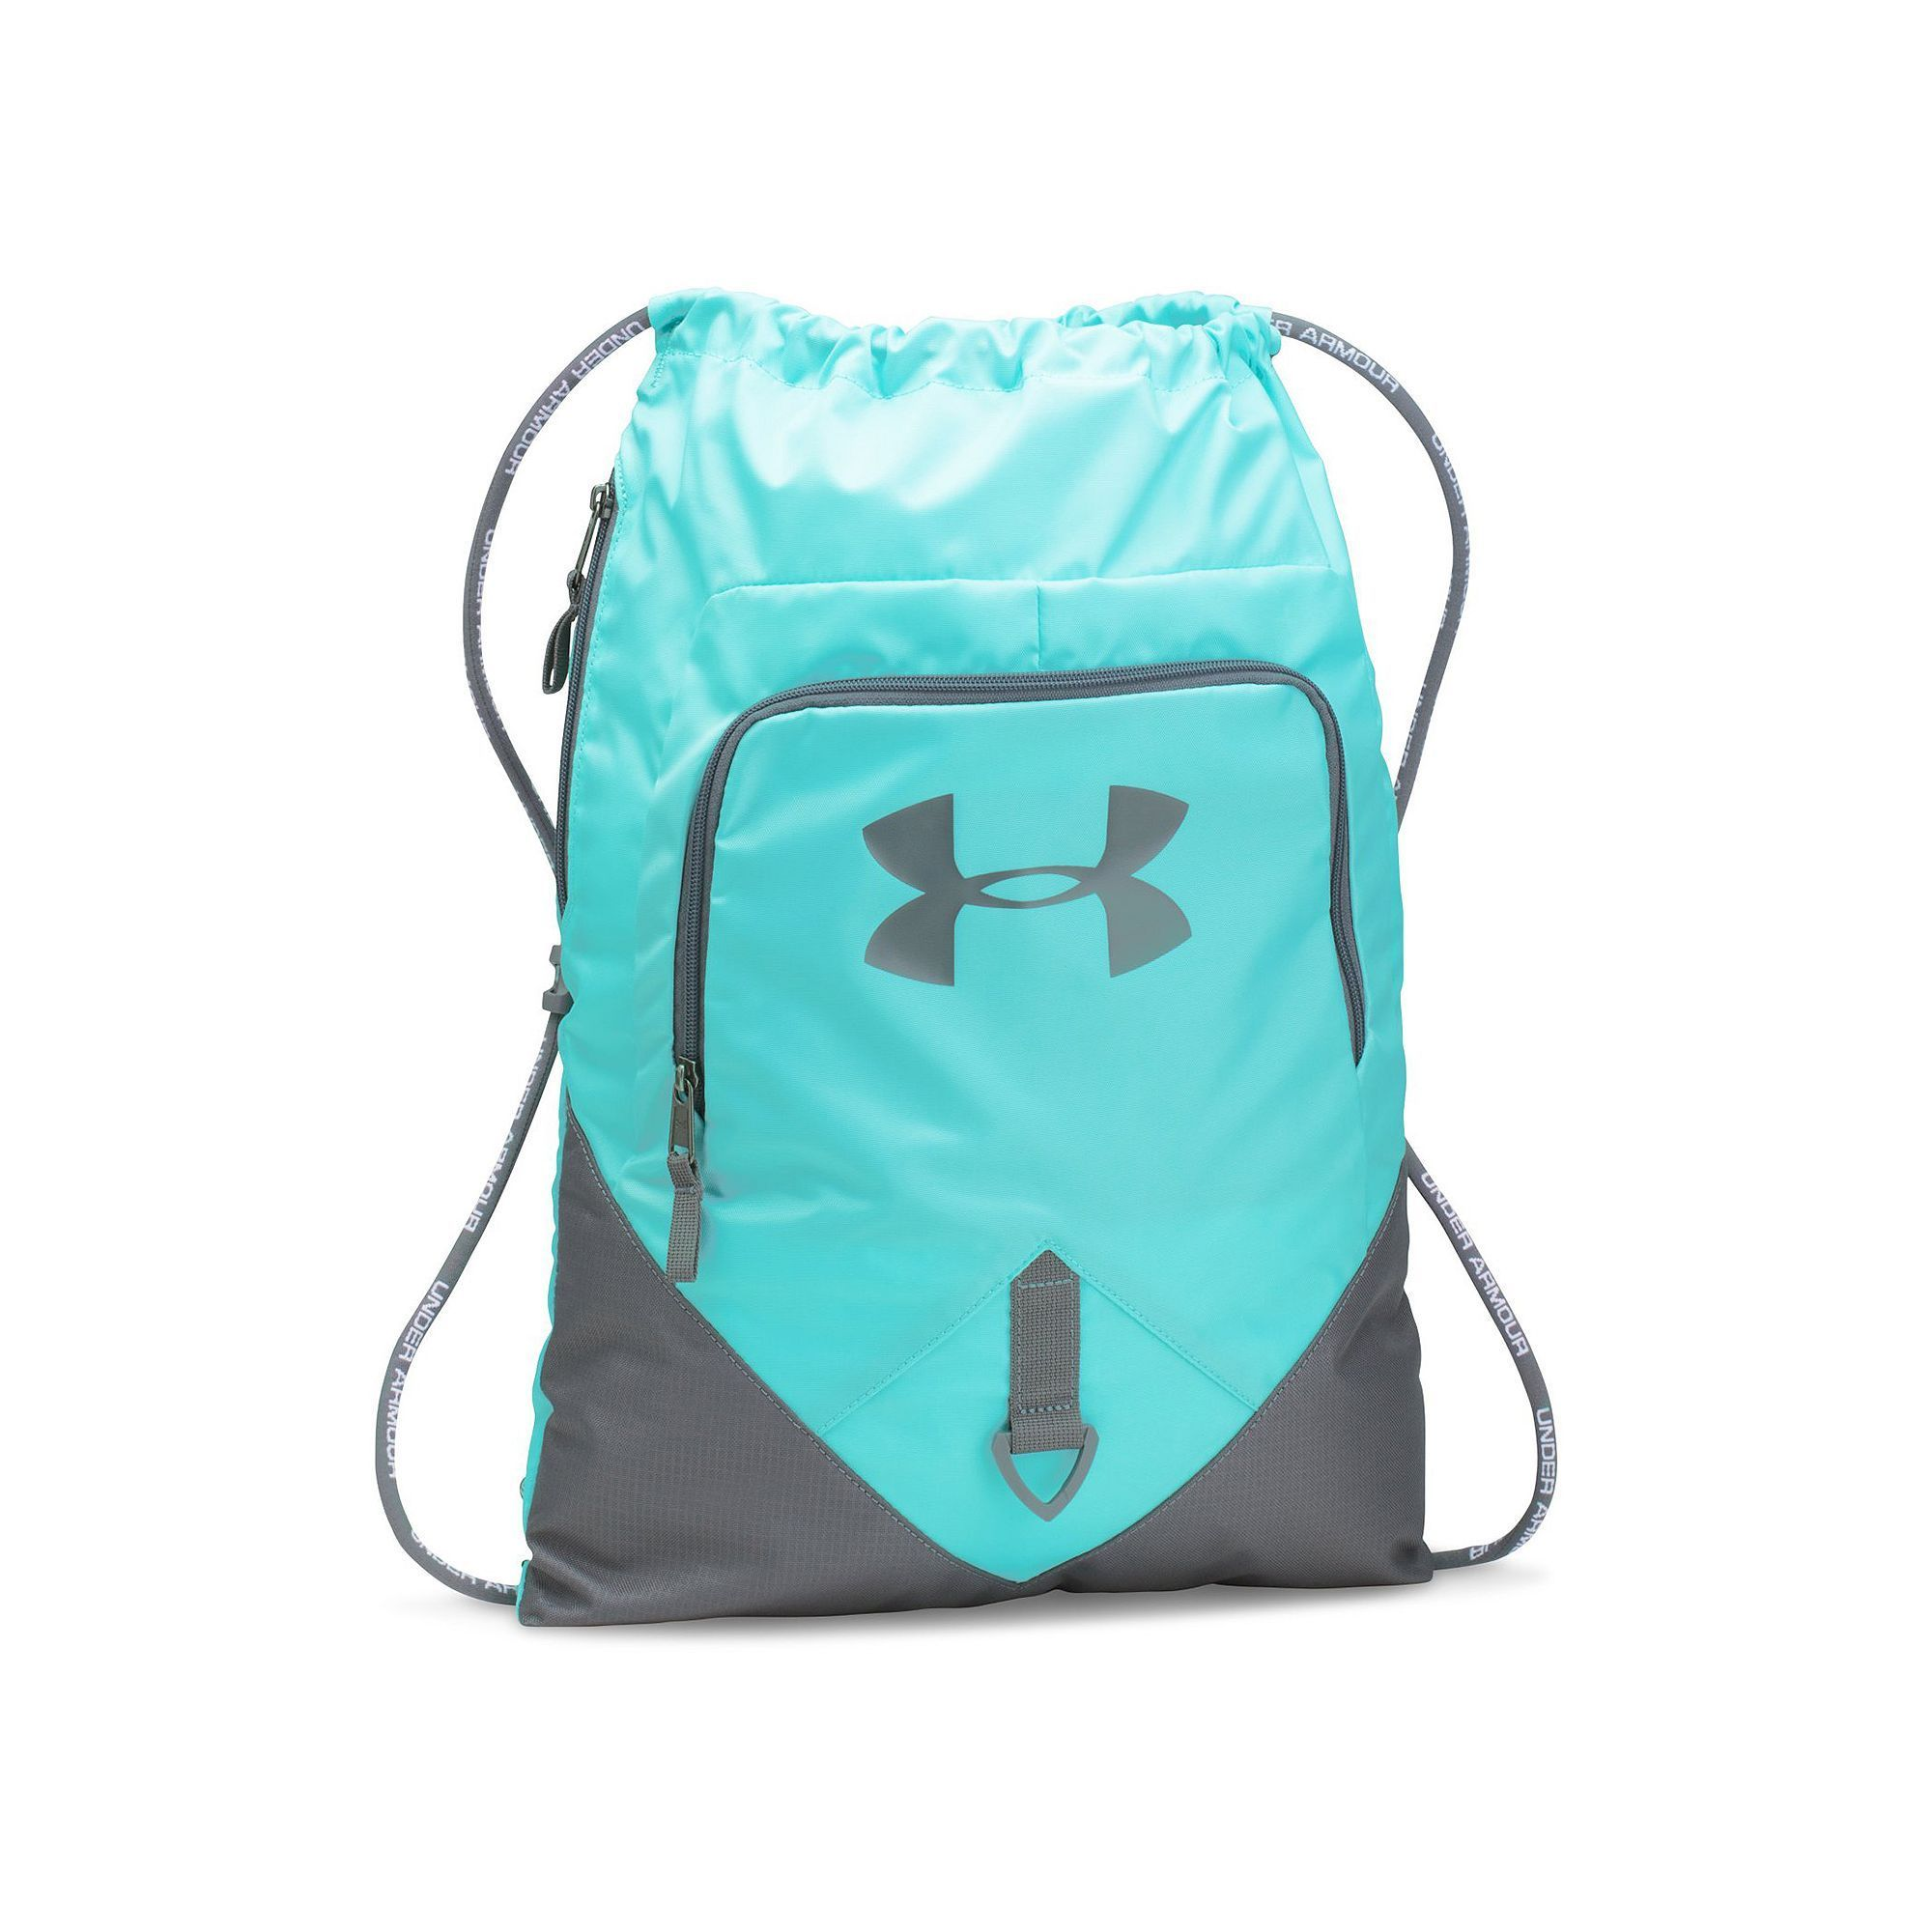 903ba81643 Under Armour Undeniable Drawstring Backpack in 2019